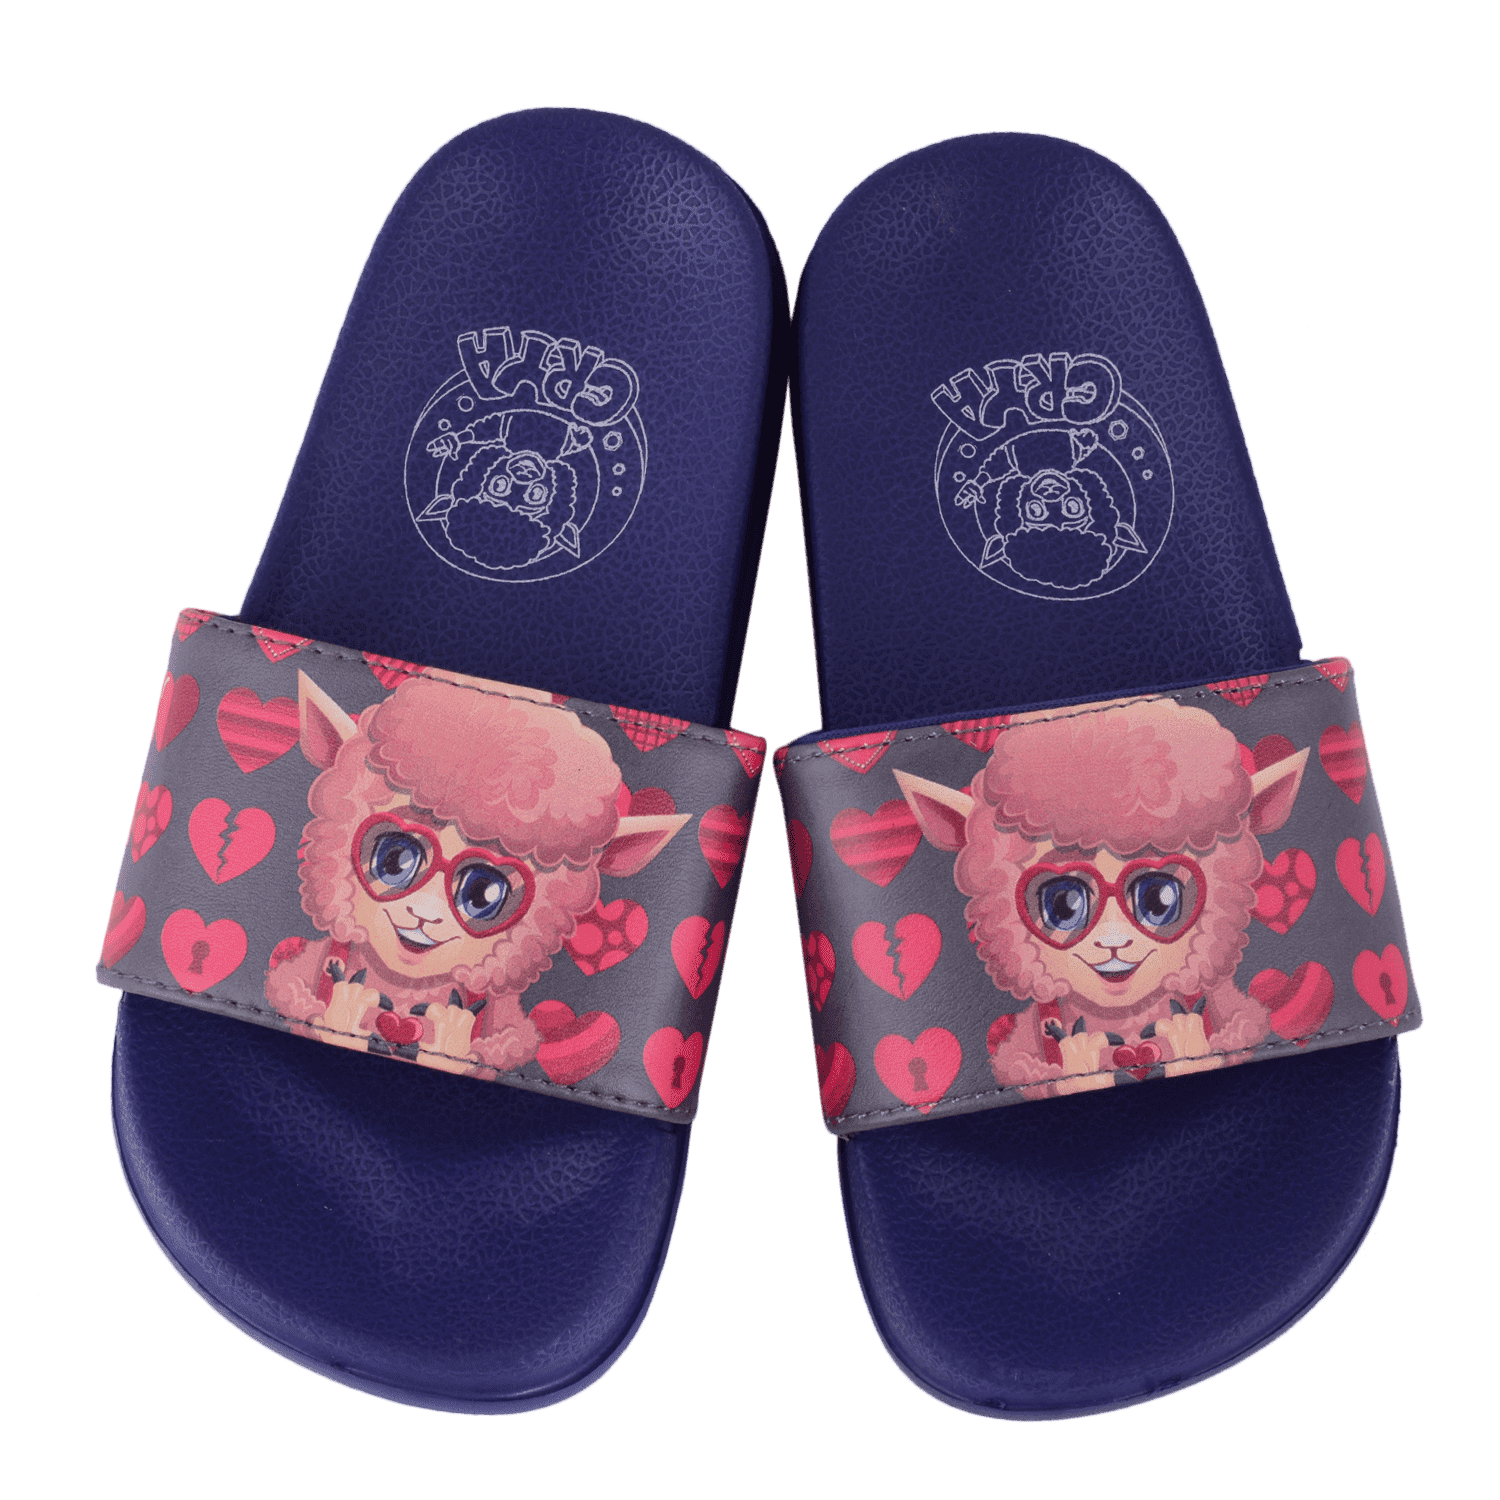 crya-live-love-laugh-slide-on-slipper-slsl8006lllblu